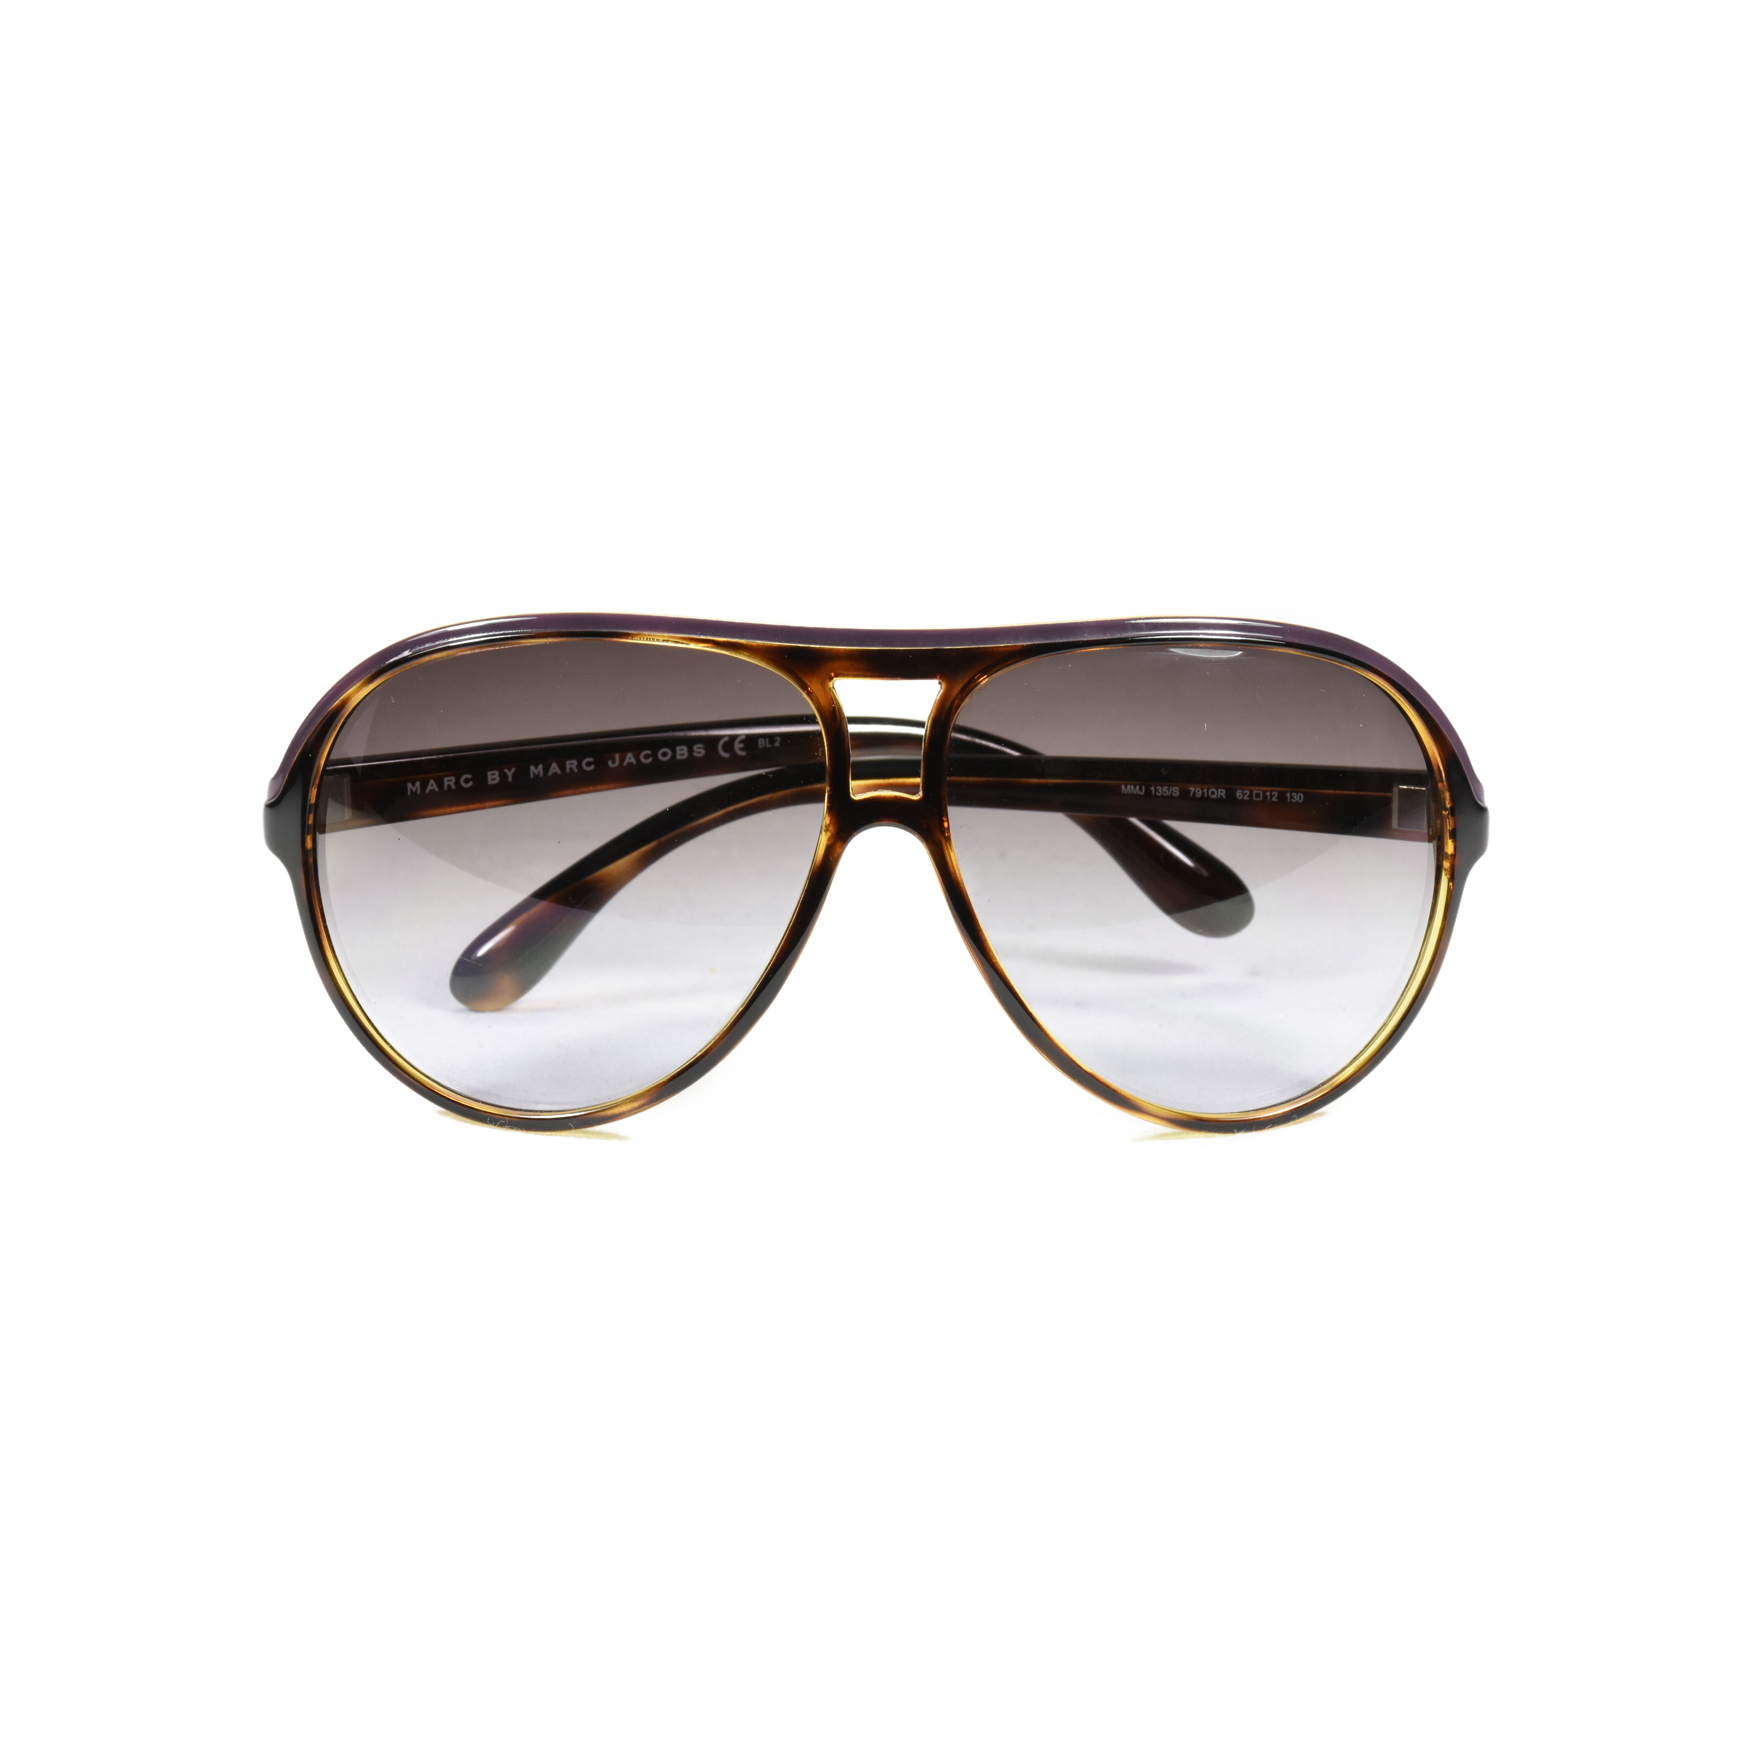 6e6038d41f4 Authentic Second Hand Marc by Marc Jacobs Acetate Aviator Sunglasses  (PSS-048-00090)